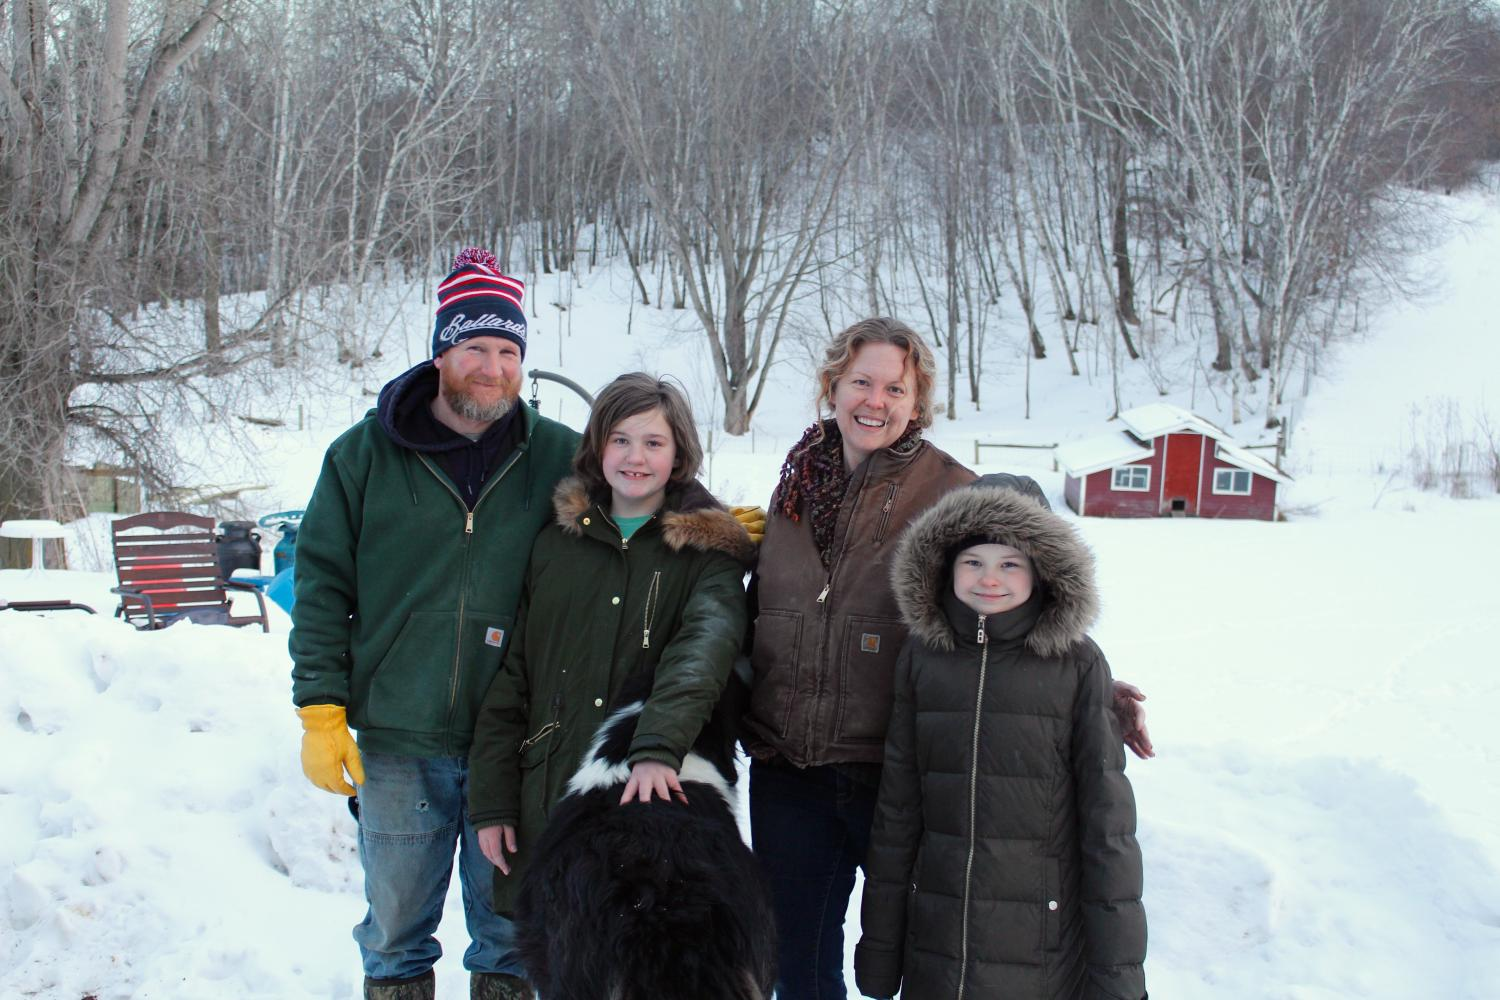 Andy and Stephanie Schneider, owners of Together Farms, pose for a photo with their two daughters, Madelynne, 11, right and Adeyle, 8, left, and their dog Mr. Fluffypants, on Feb. 12. The family moved to their Mondovi farm in 2009.